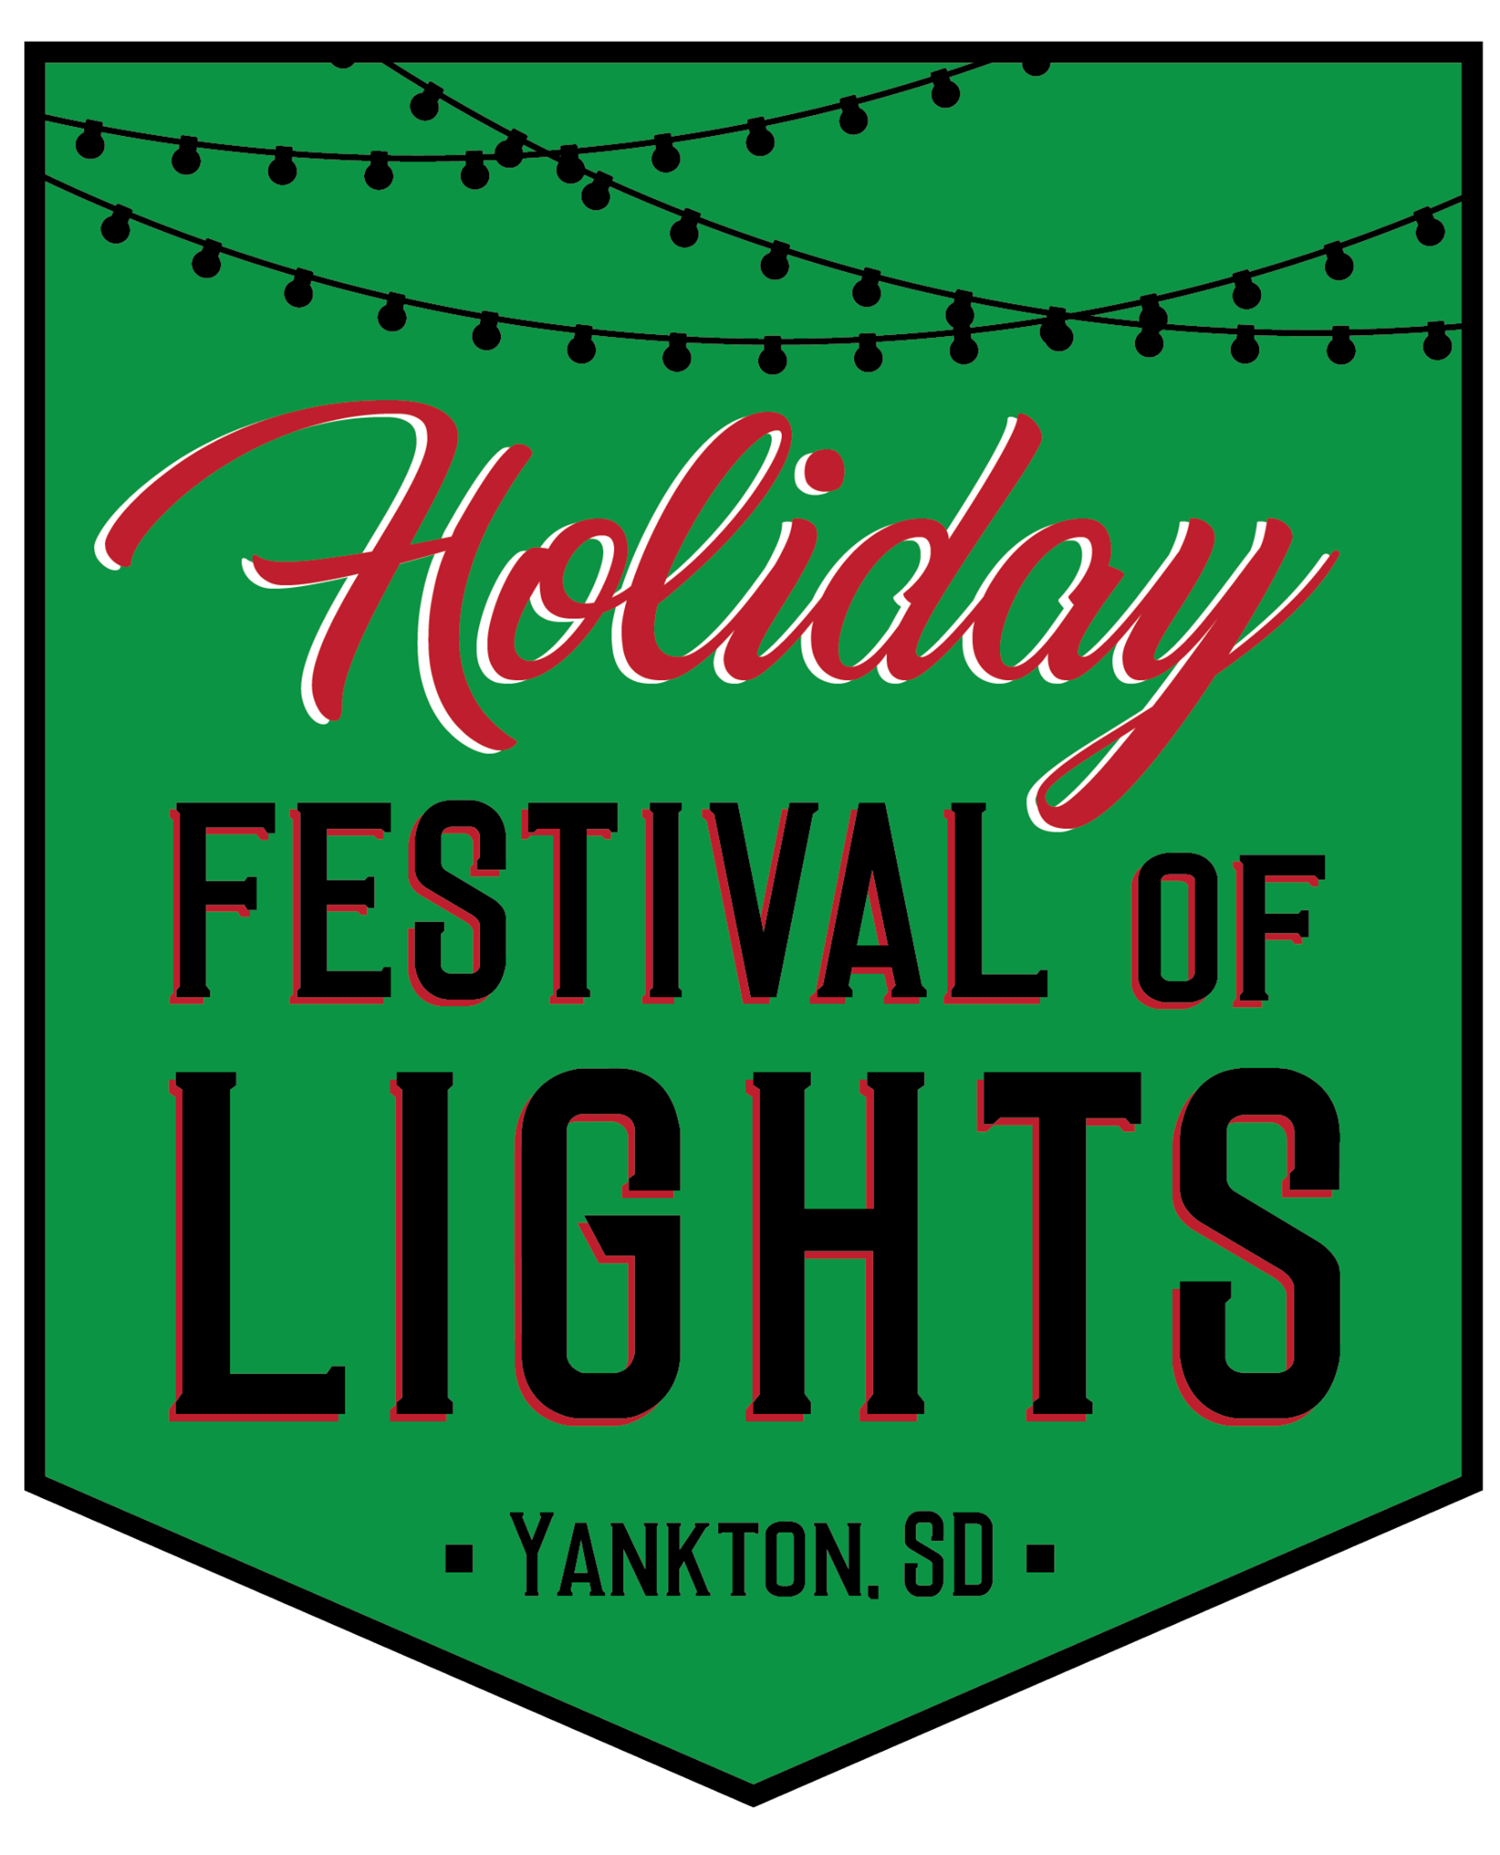 Yankton Holiday Festival of Lights